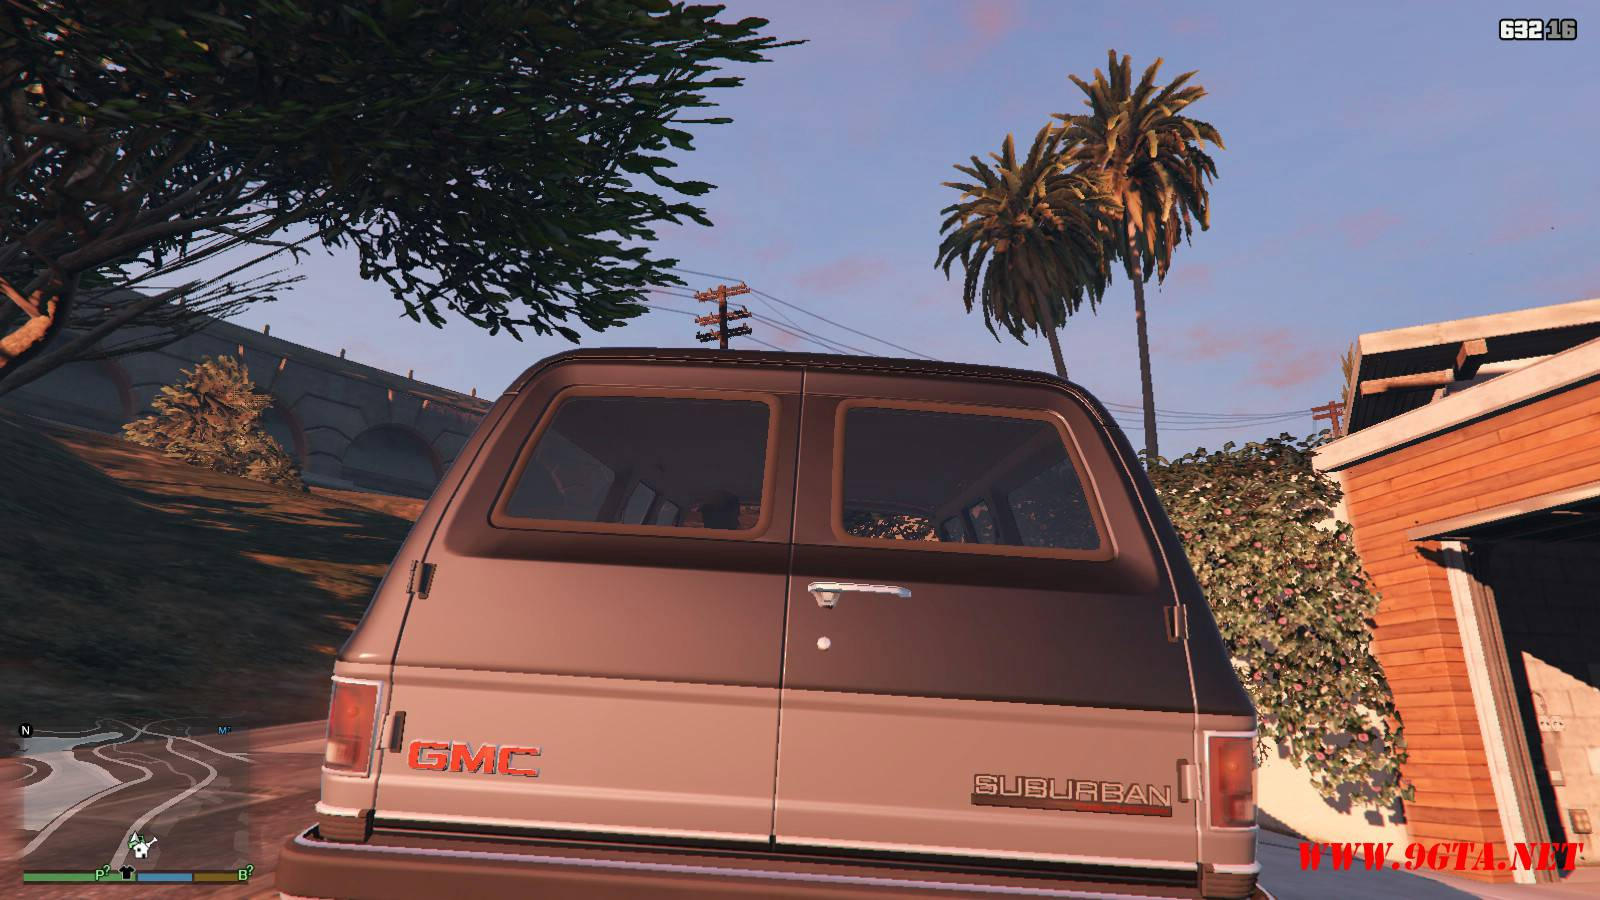 1989 GMC Suburban Mod For GTA 5 (3)